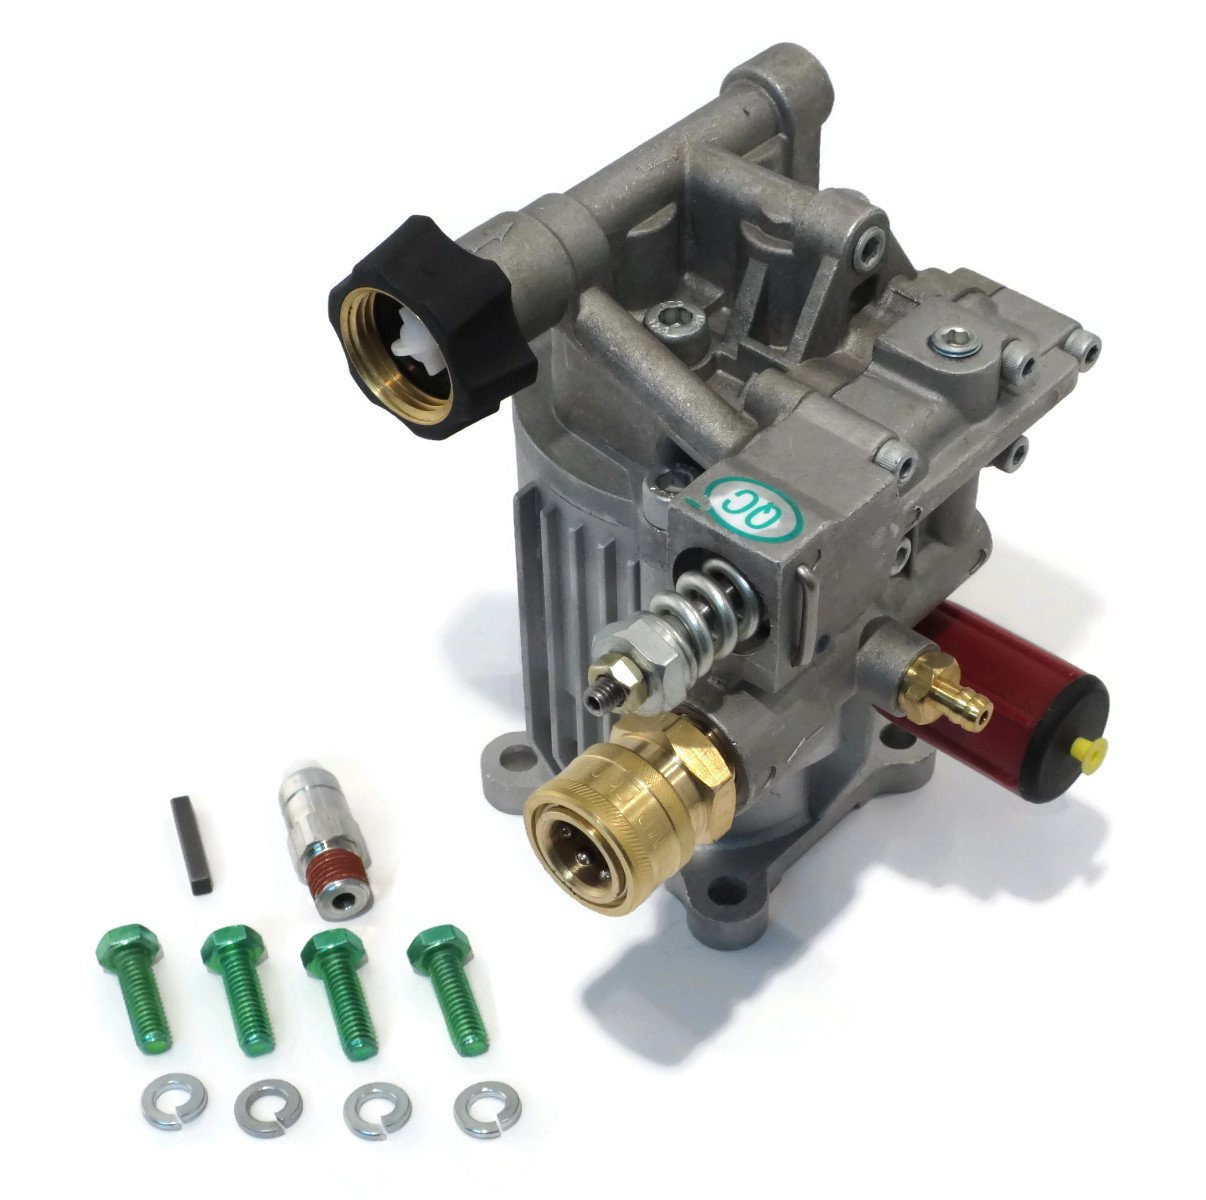 Amazon.com : New PRESSURE WASHER PUMP KIT Replaces A14292 Fits Honda Excell  FULL ONE YEAR WARRANTY - Includes thermal relief valve and engine shaft key  ...